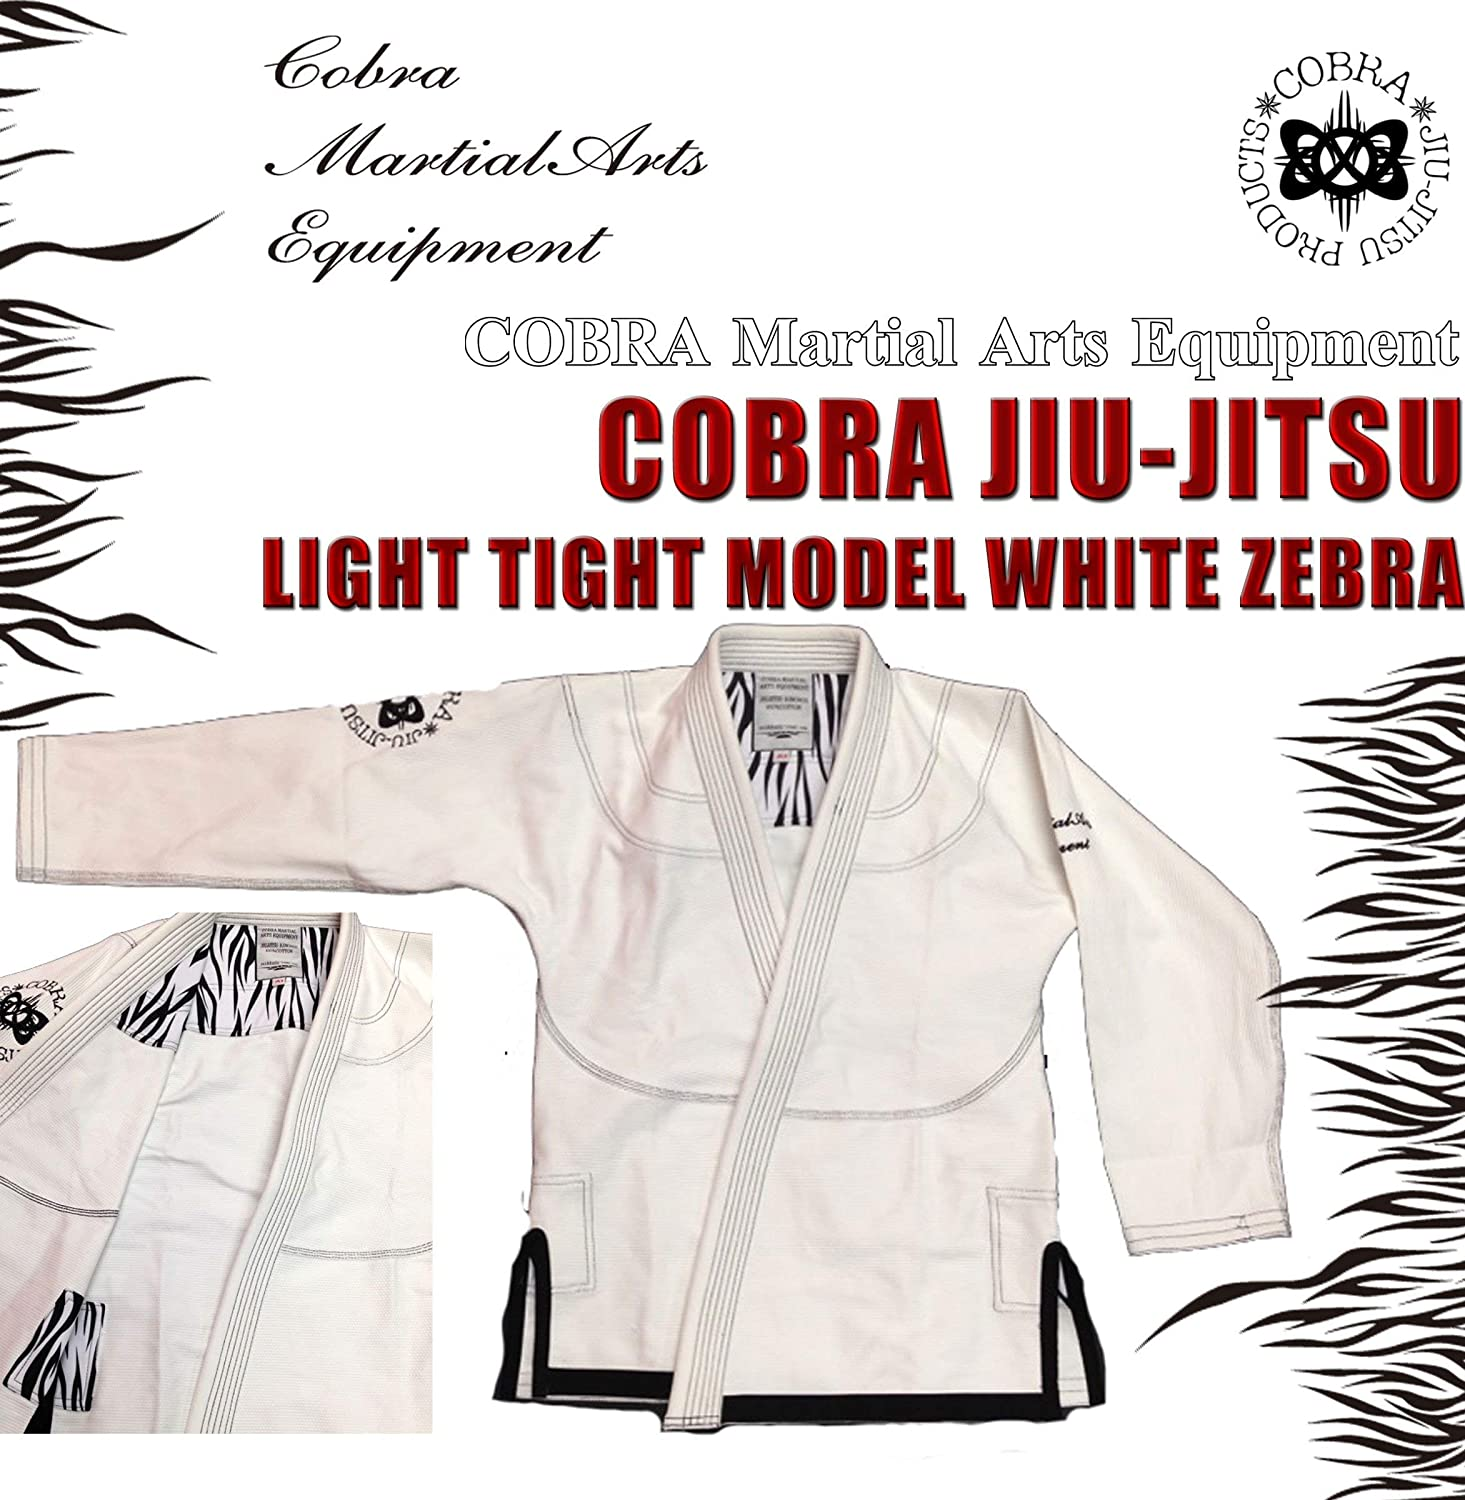 COBRA JIU-JITSU GI LIGHT TIGHT MODEL WHITE ZEBRA (A1/身長160-170cm 体重~75kg) B01B5VWL4A  A1/身長160-170cm 体重~75kg